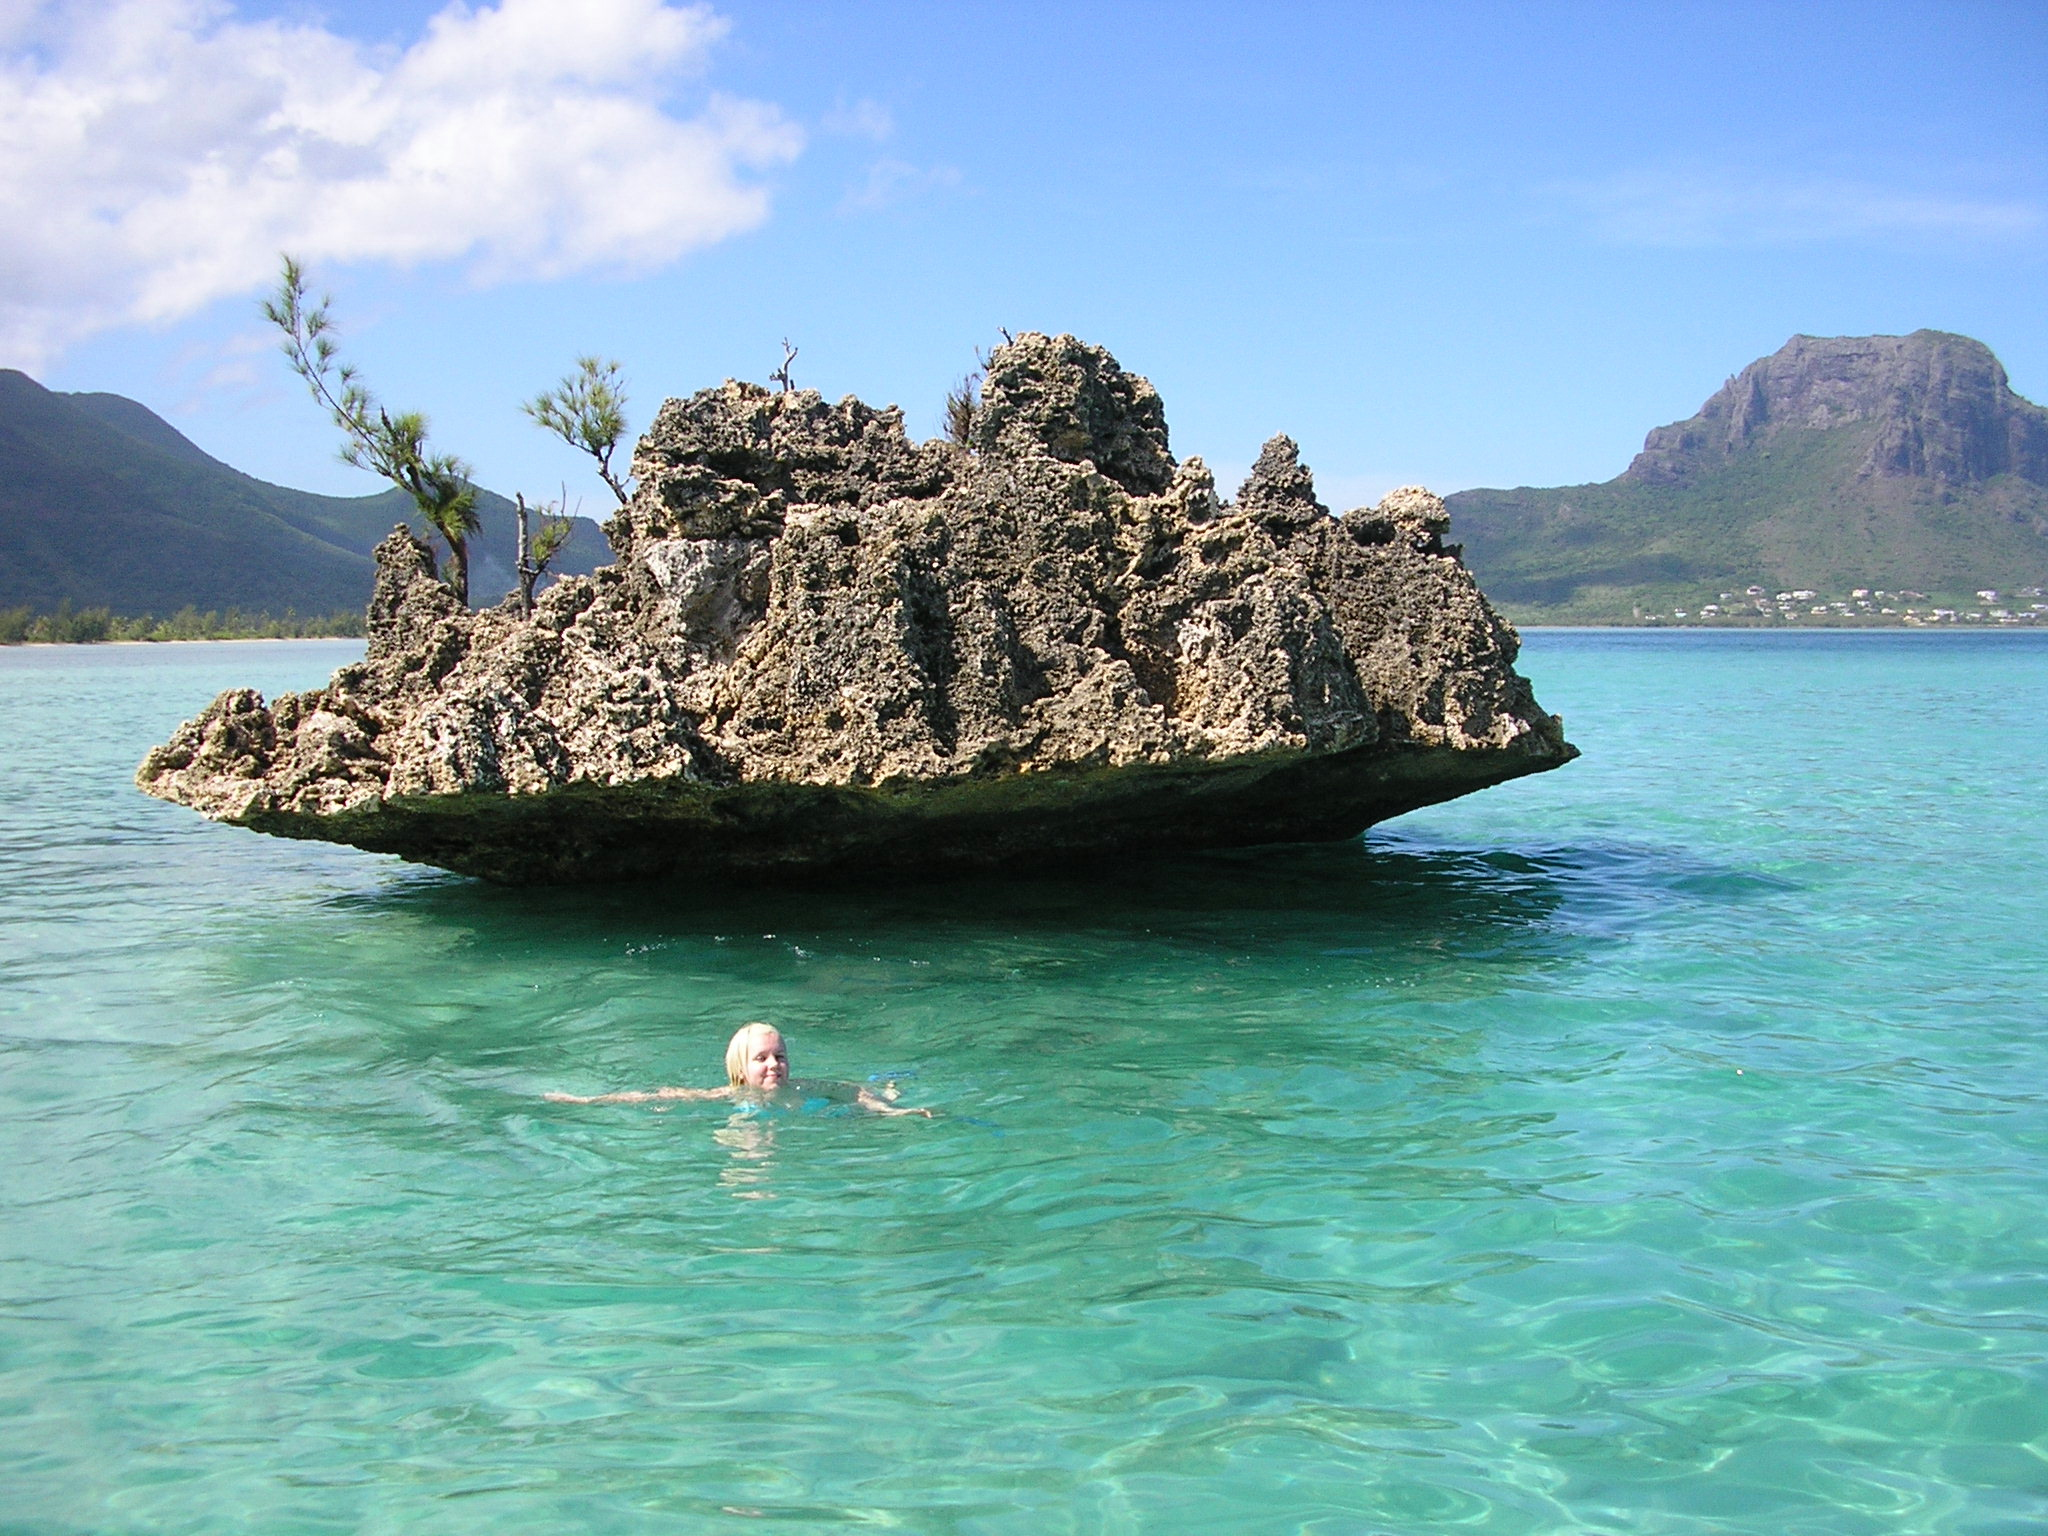 Whale Rock is great for snorkelling where hammerhead sharks may be spotted